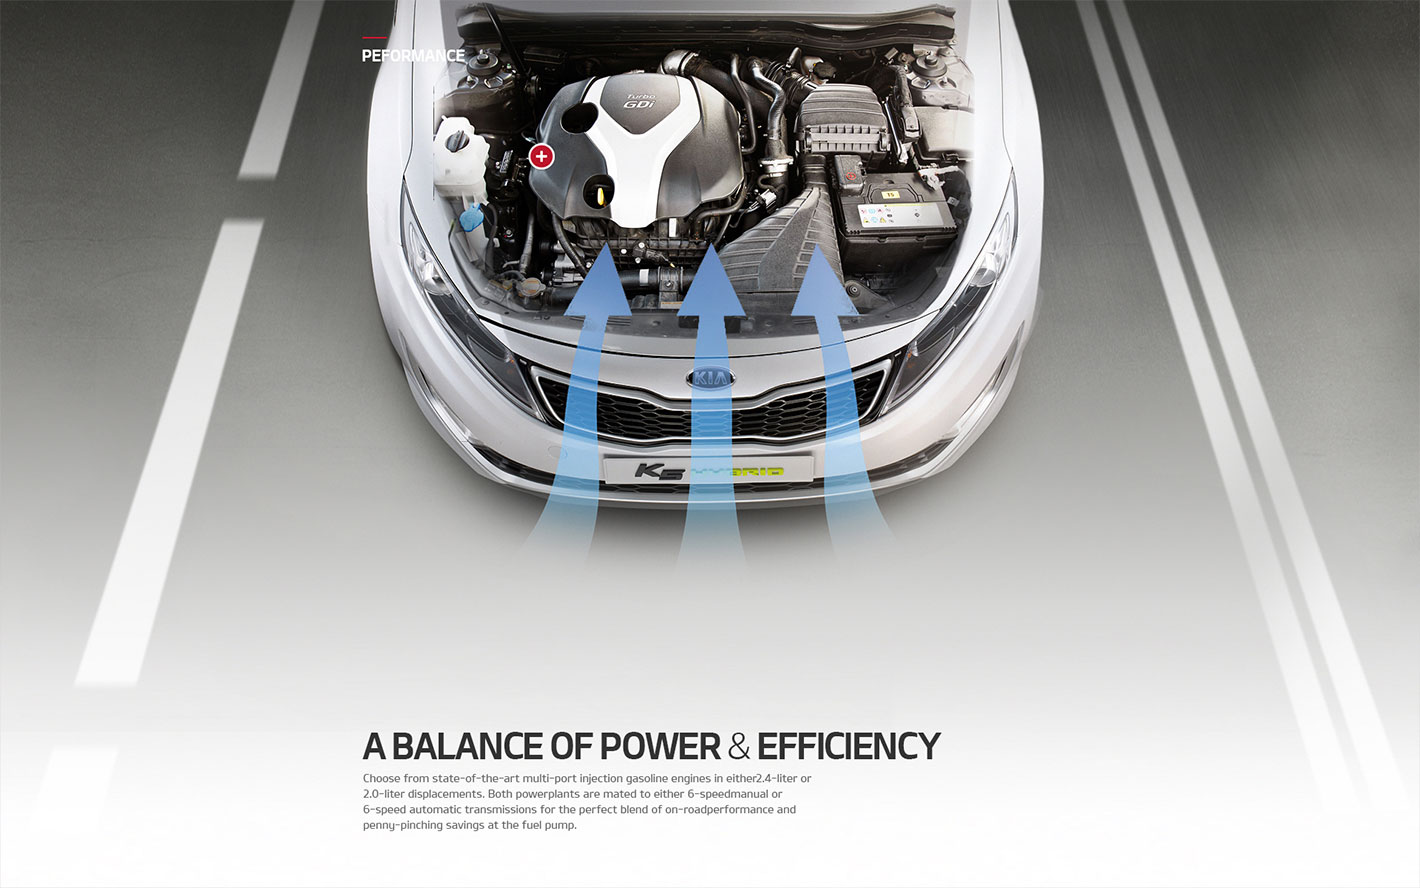 Web design illustrating Kia Motors' balance of power and efficiency feature